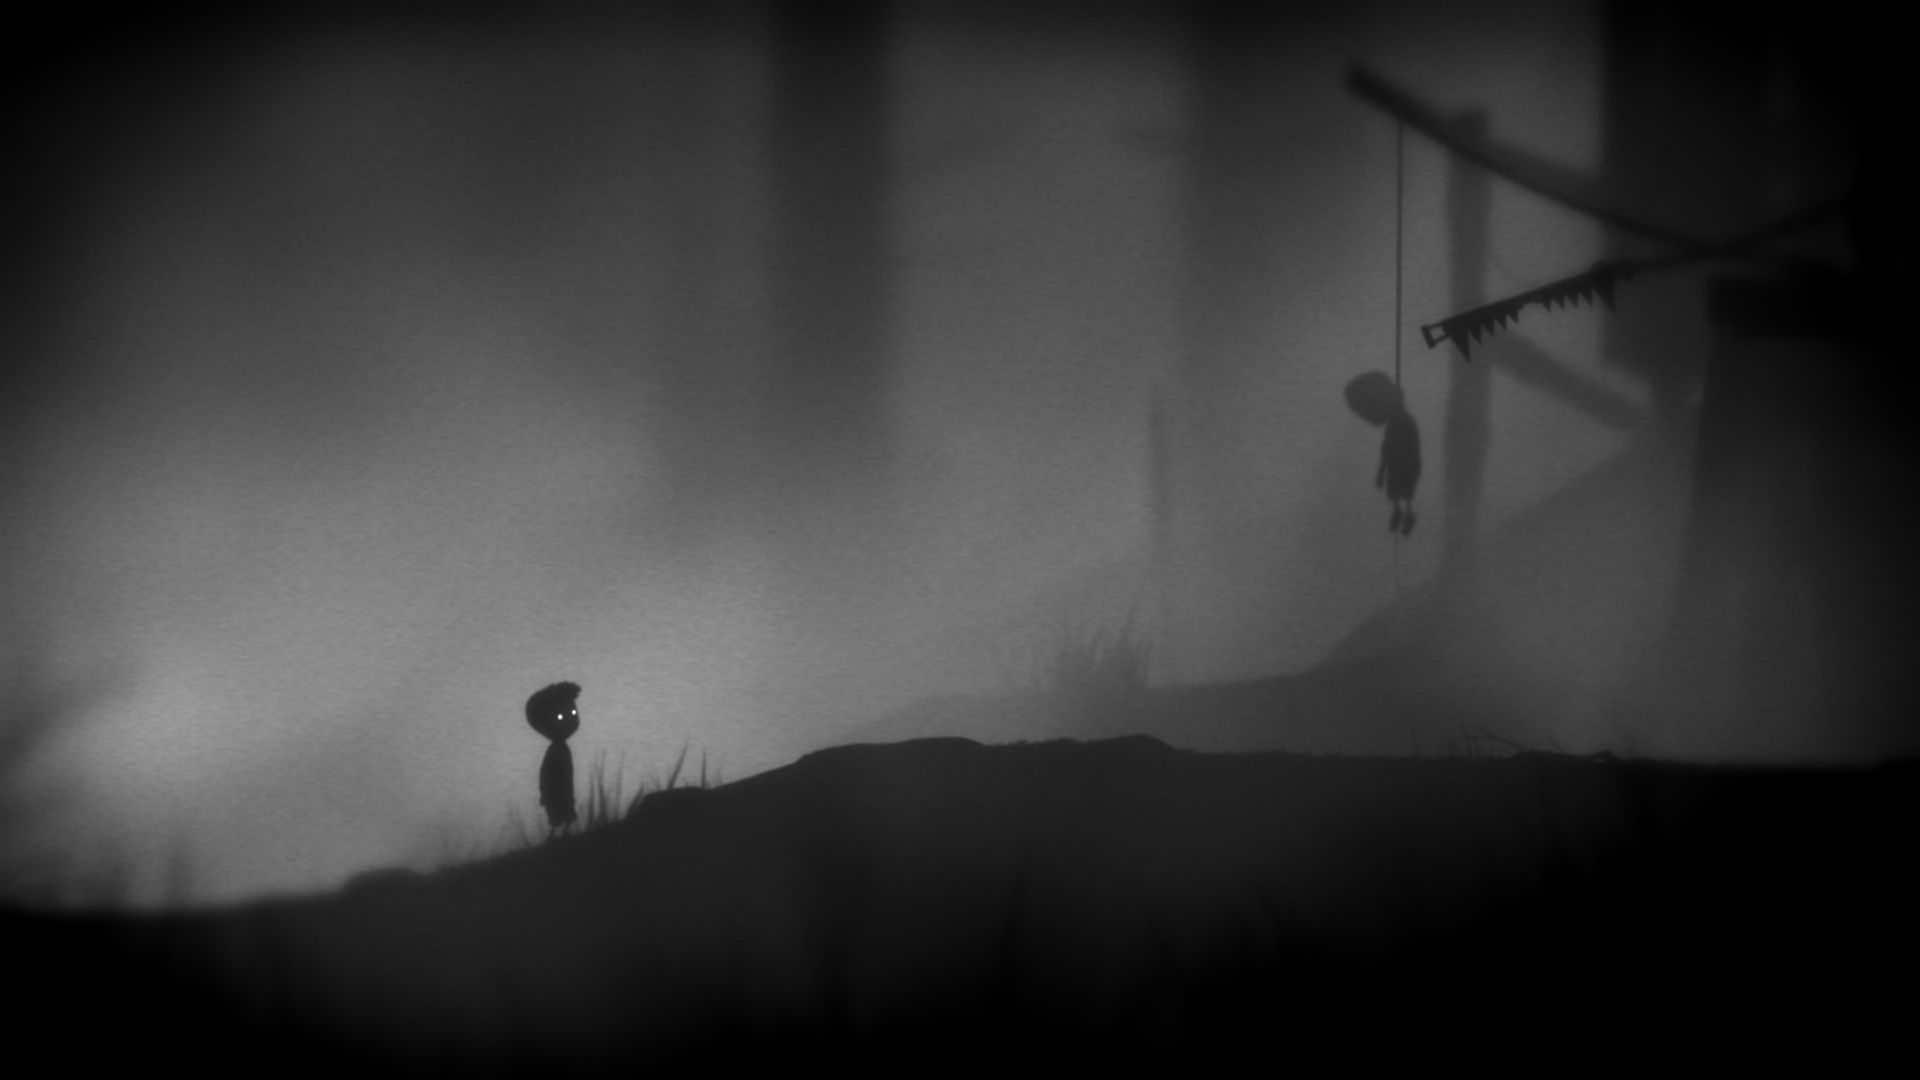 limbo full game free download for windows 7